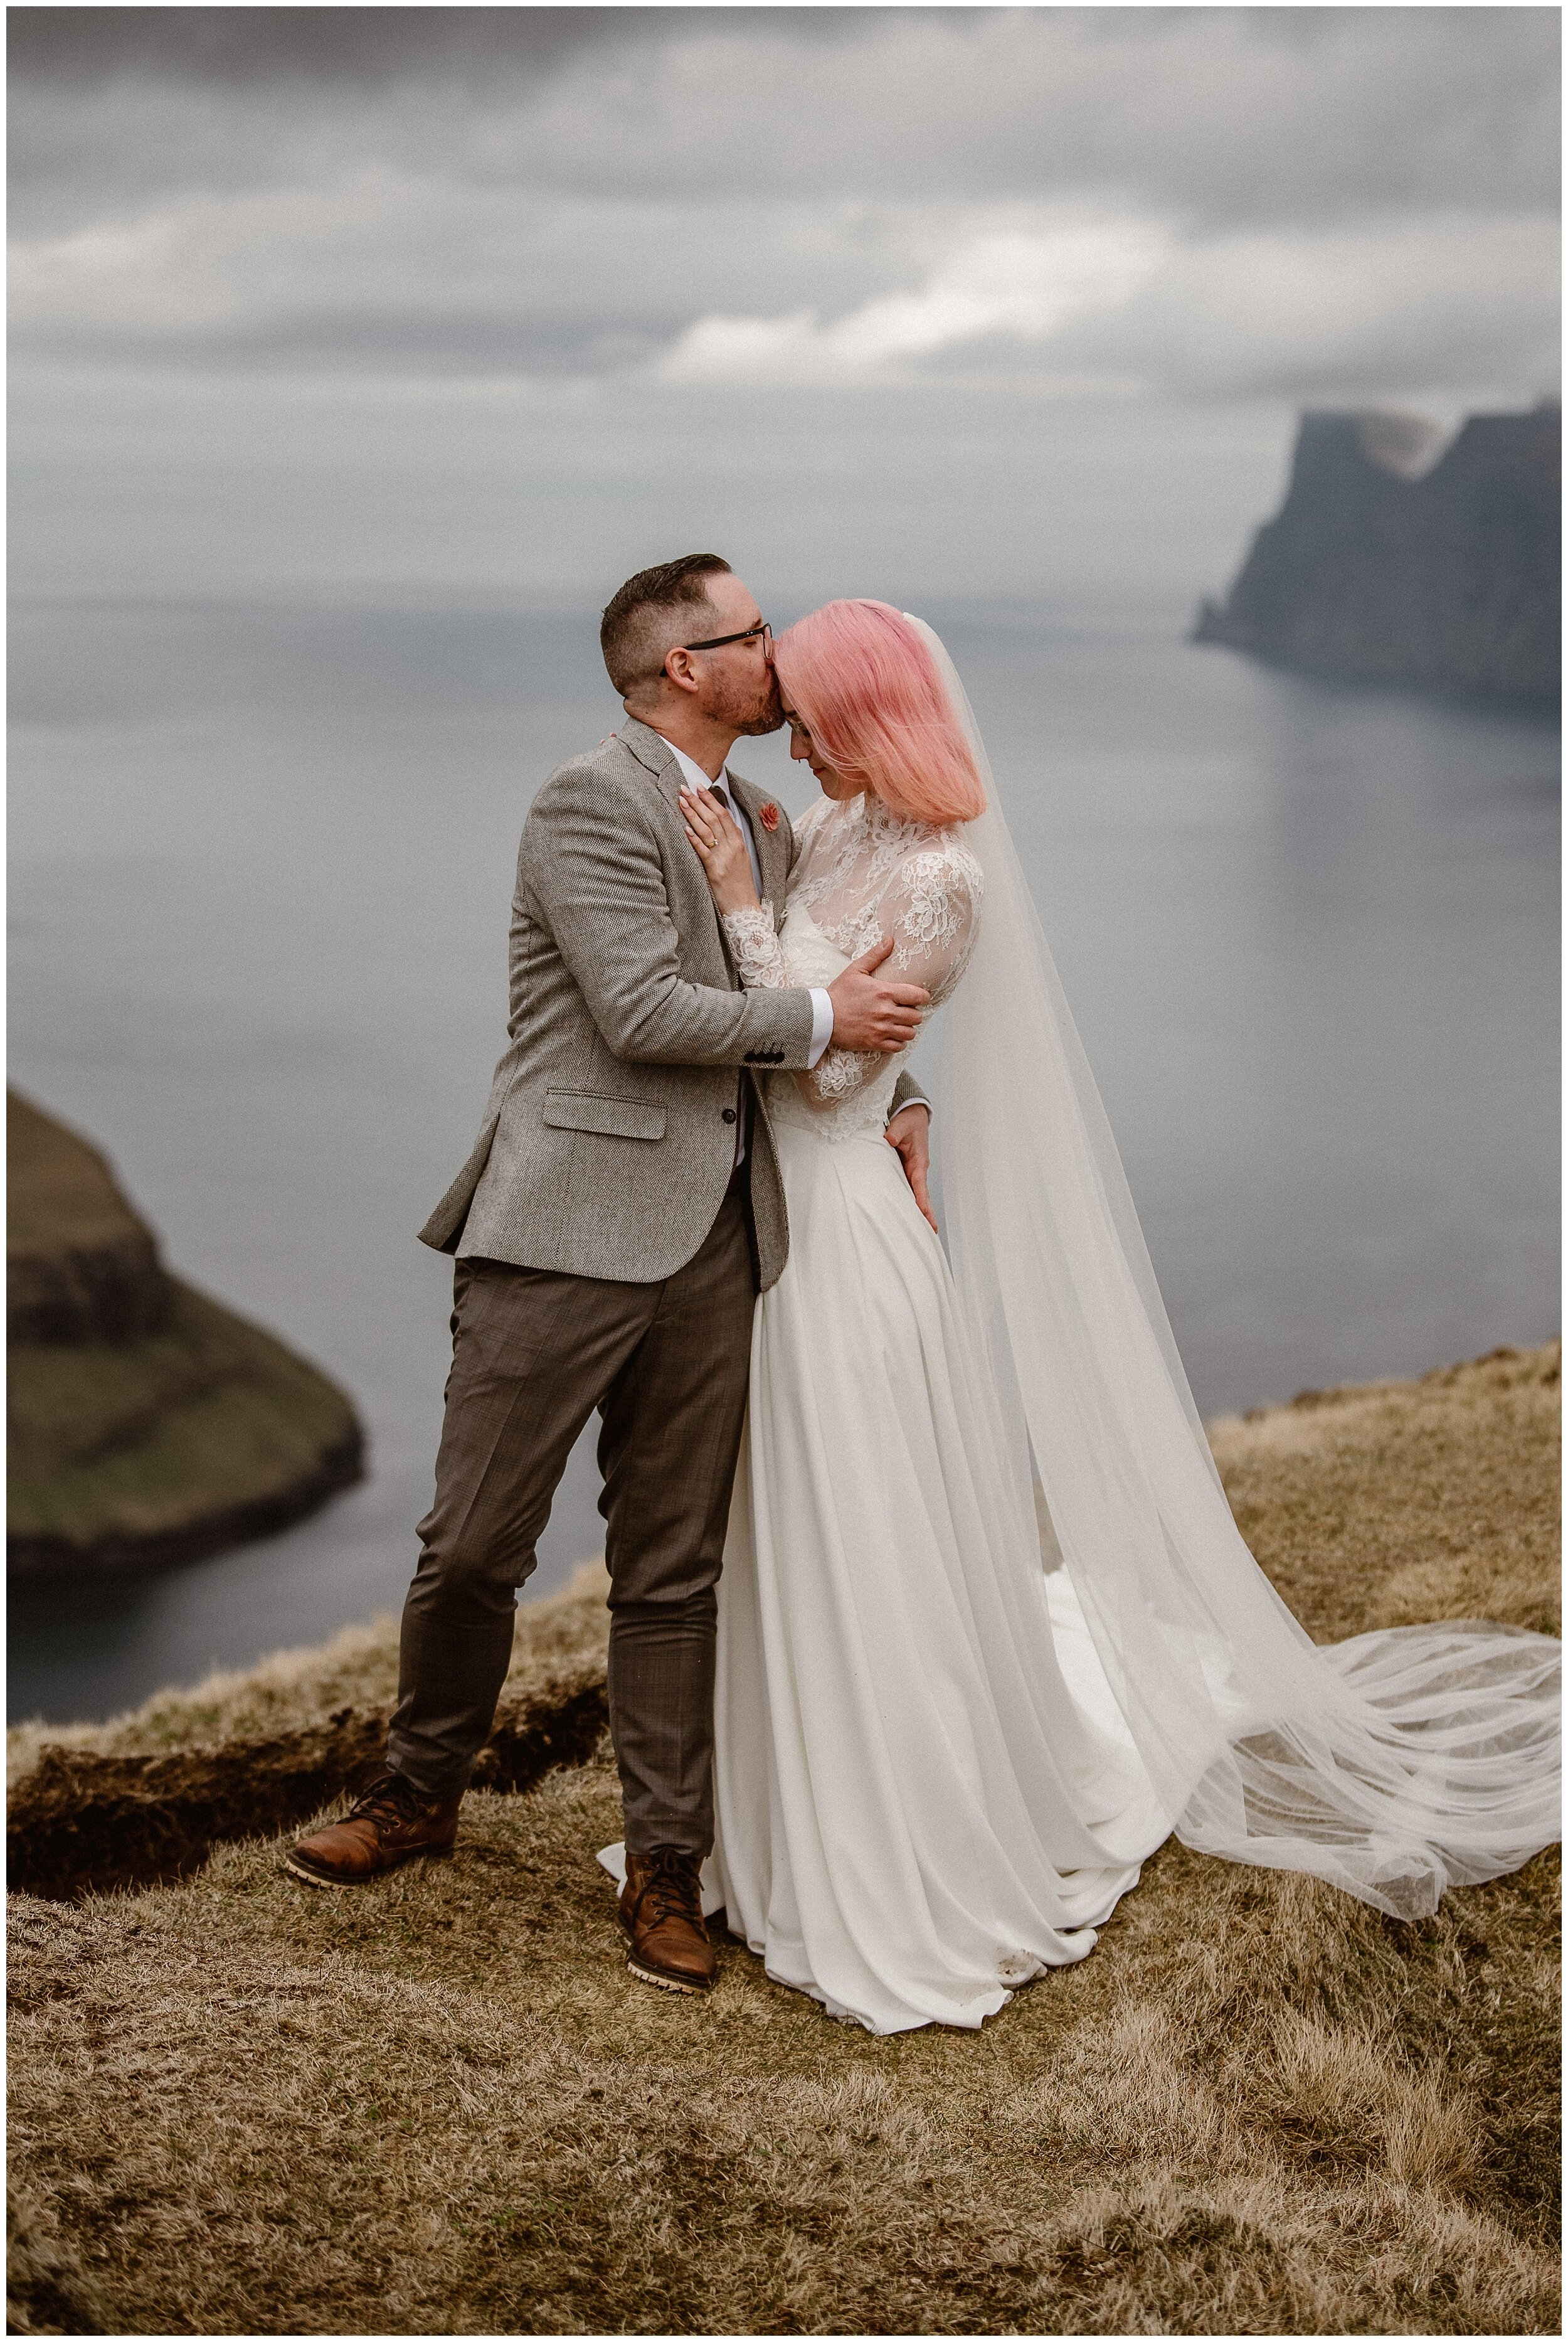 Elaura and Daryn, the bride and groom, hold each other close as they reflect on their adventure elopement day . Daryn leans in to kiss Elaura on the forehead, just below her pastel pink bangs. These adventure elopement photos in the Faroe Islands were captured by Adventure Instead, an elopement photographer.